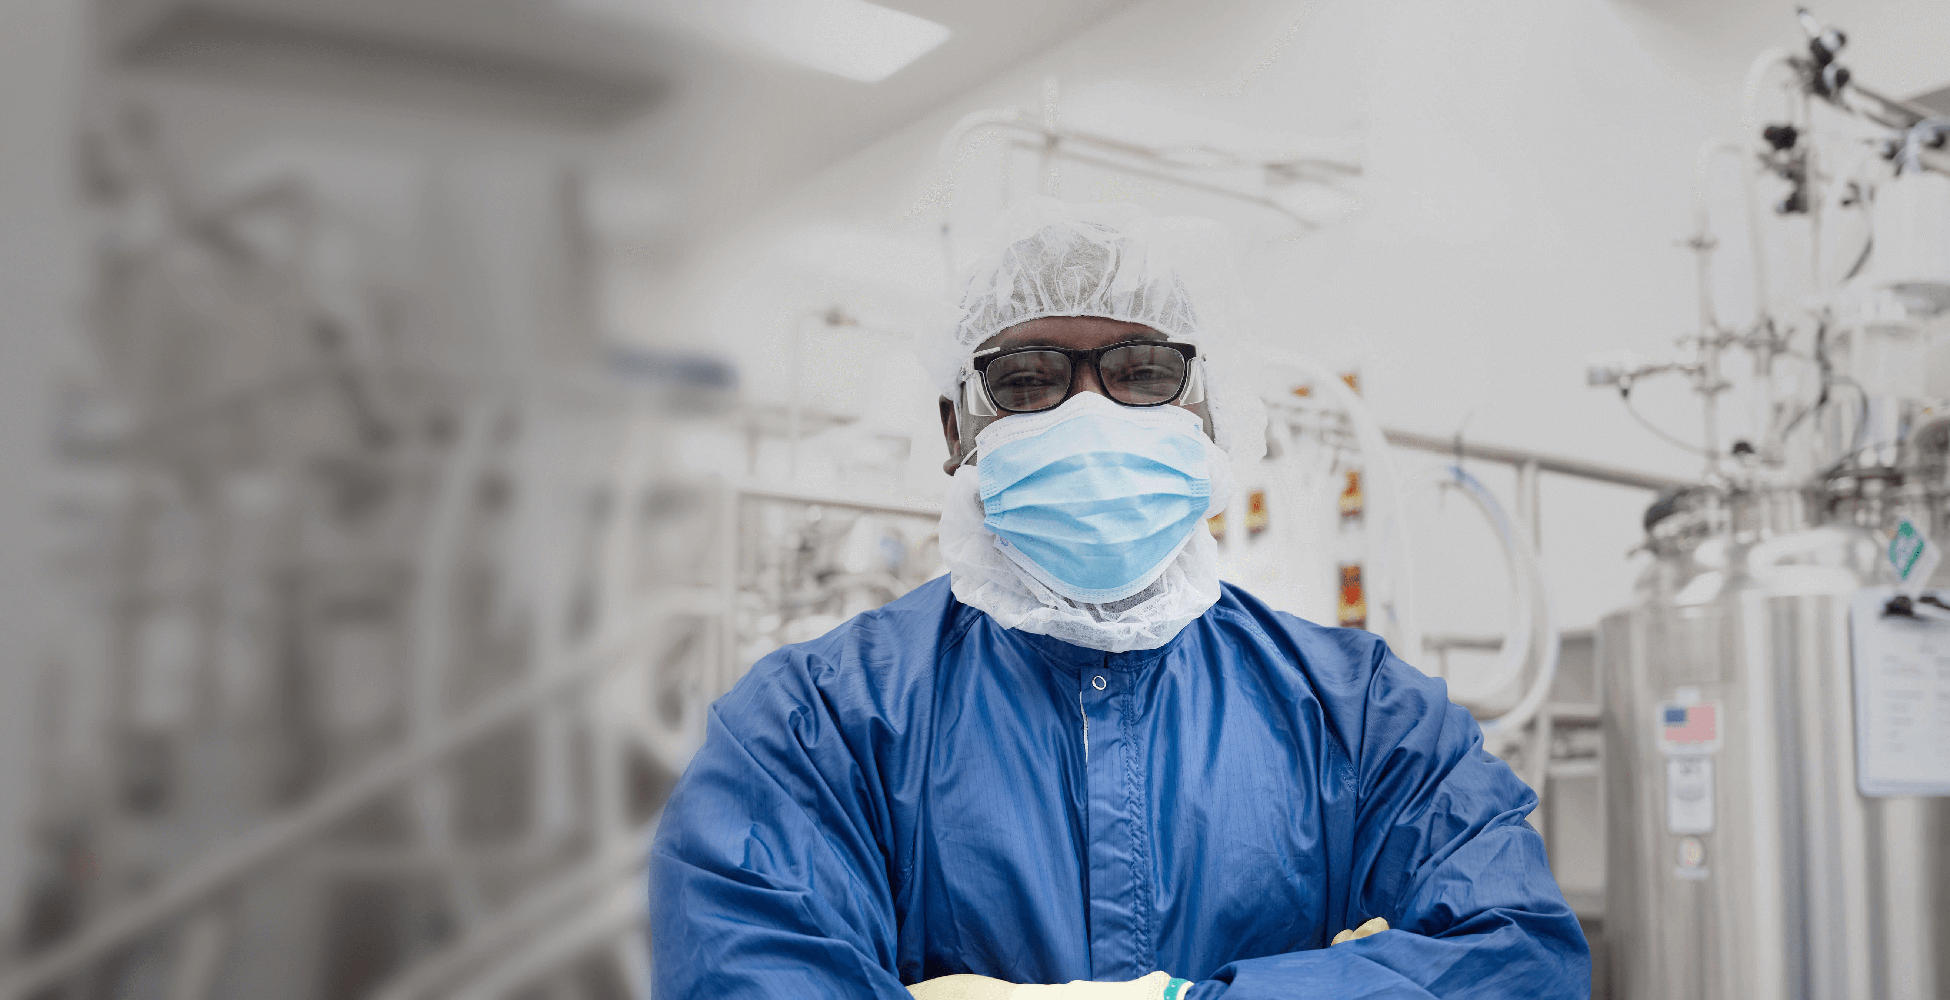 Man with glasses wearing mask and scrubs in manufacturing area at Alkermes.